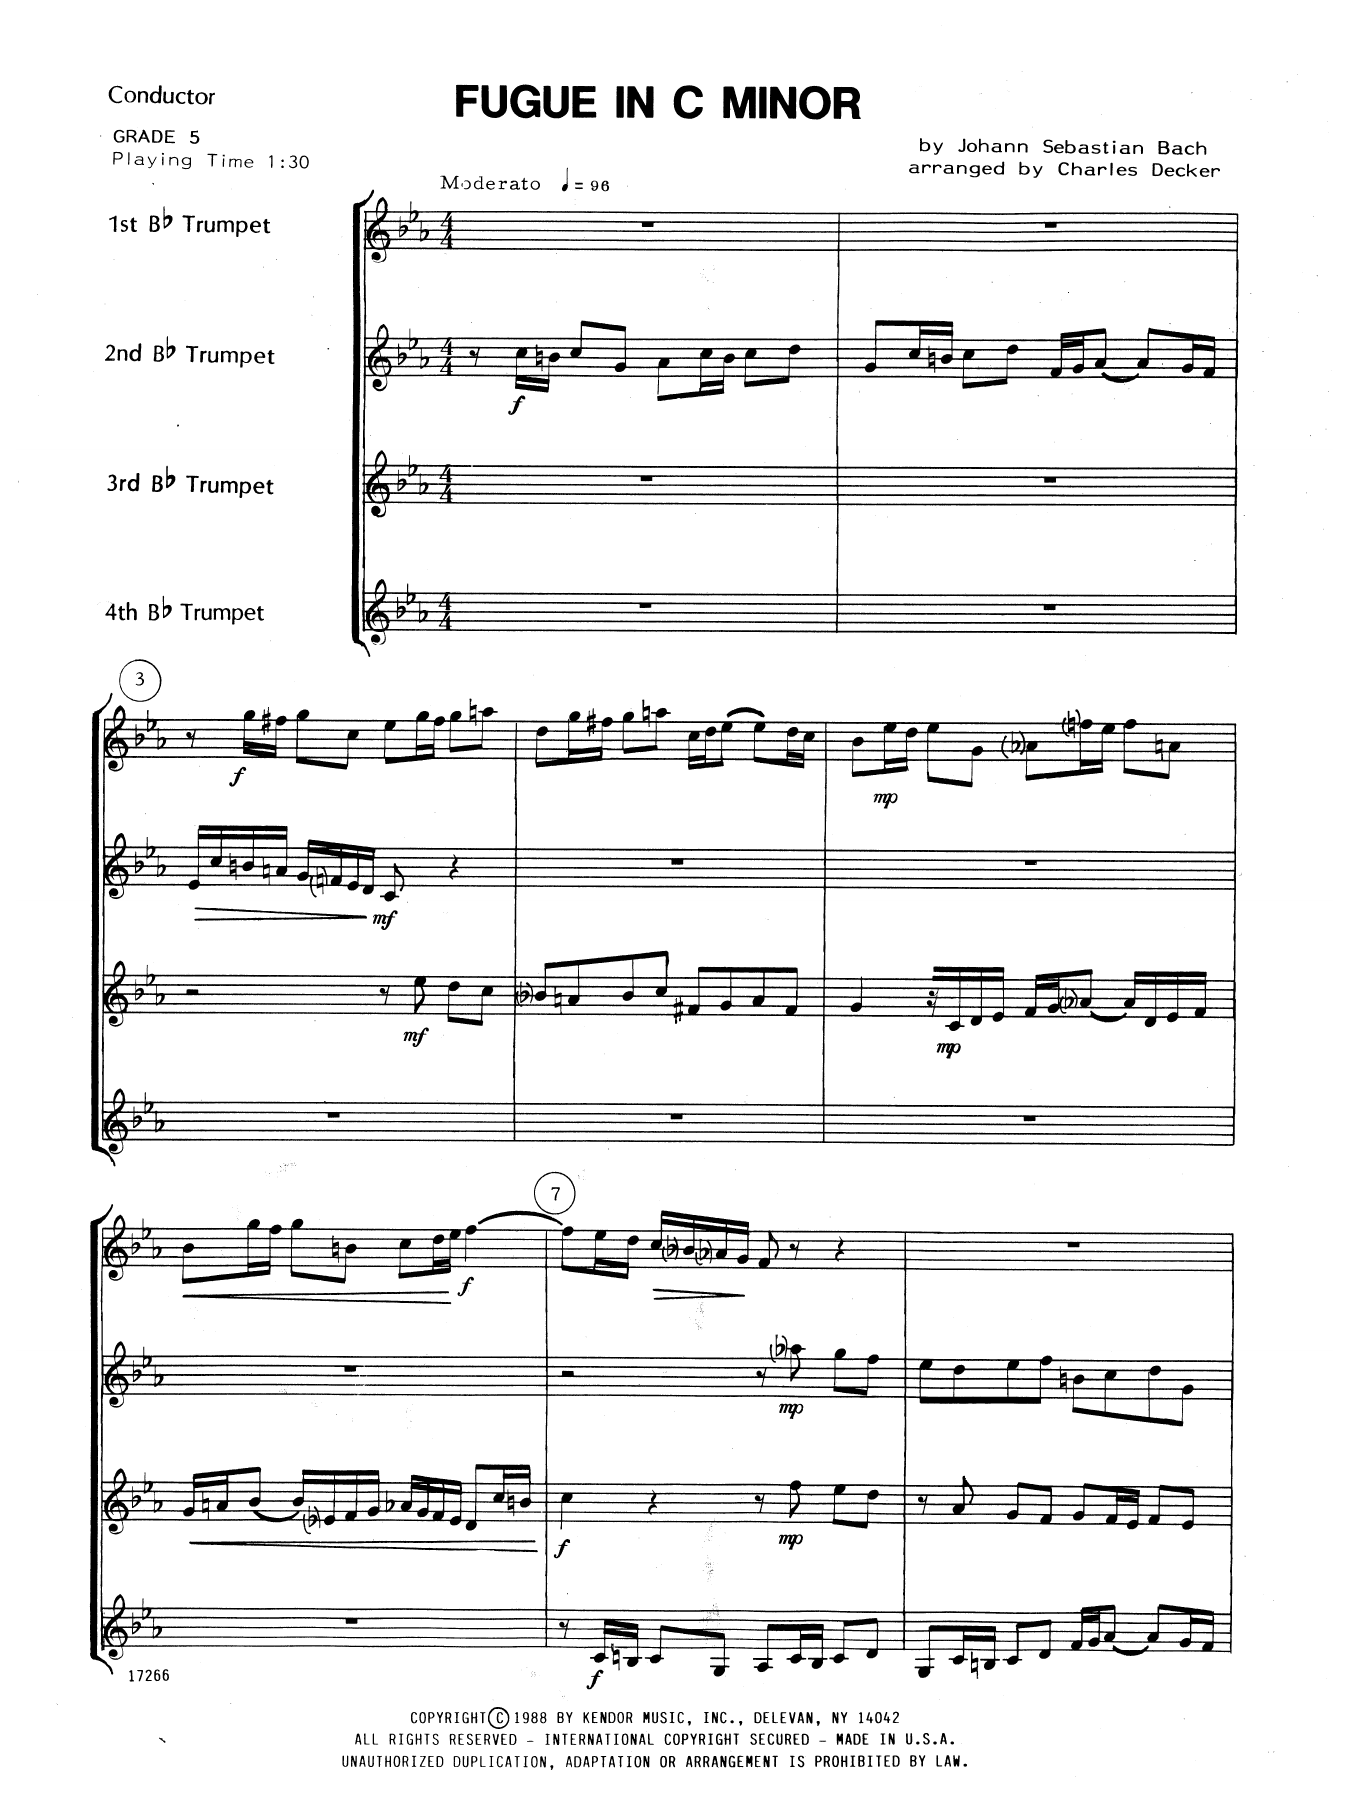 Fugue In C Minor (COMPLETE) sheet music for trumpet quartet by Charles Decker